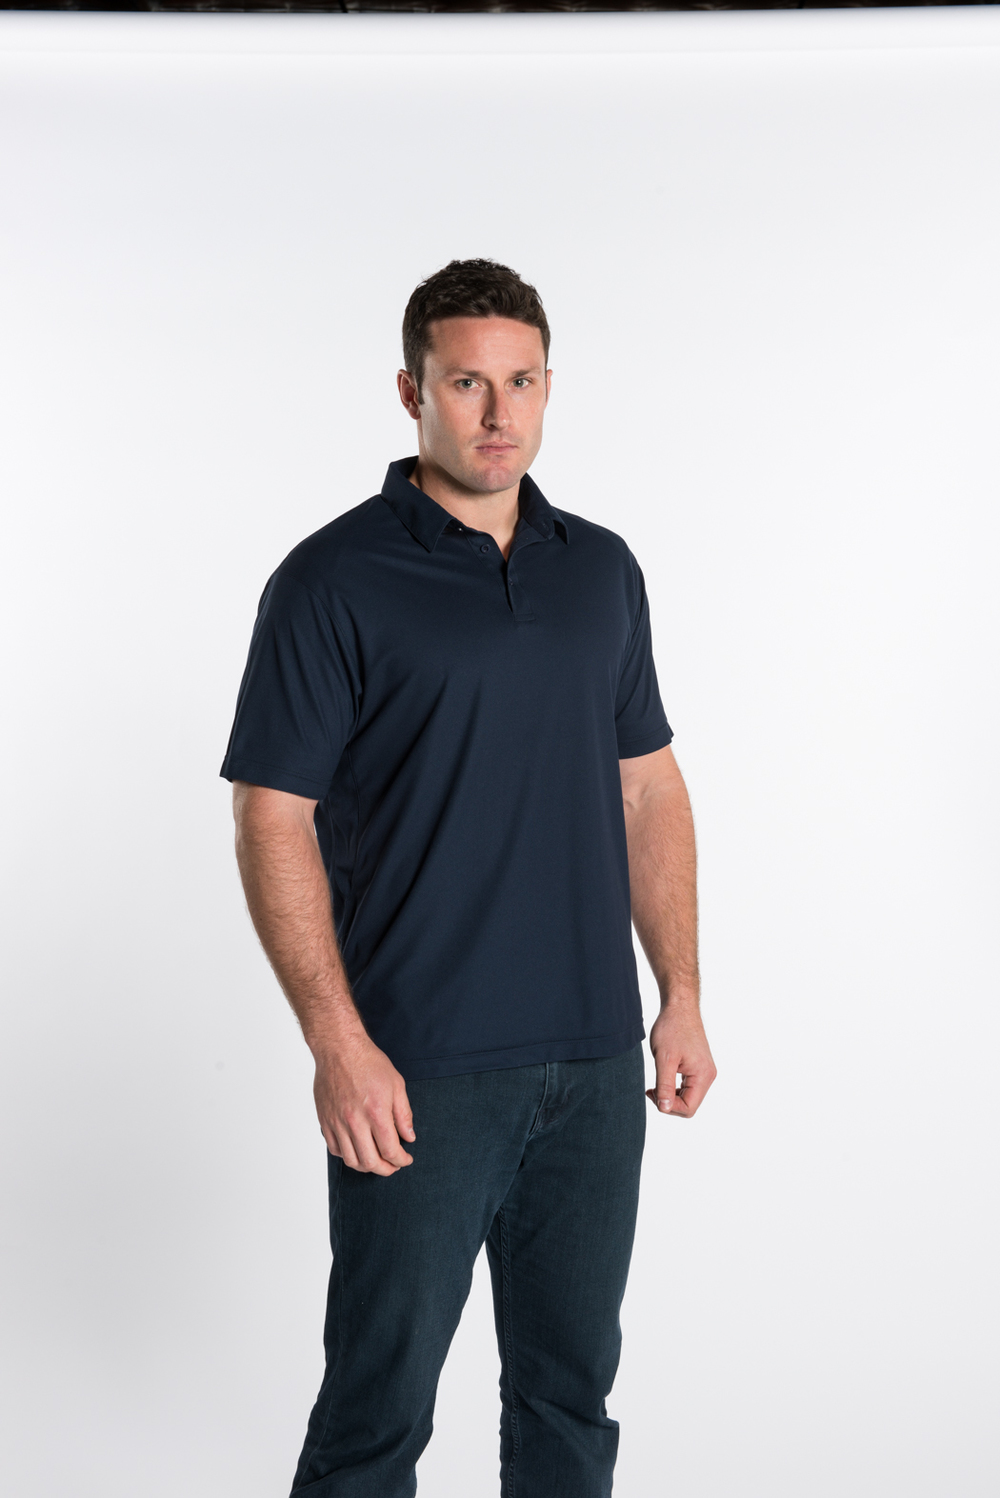 Kevin_DkBlue_Polo_-1